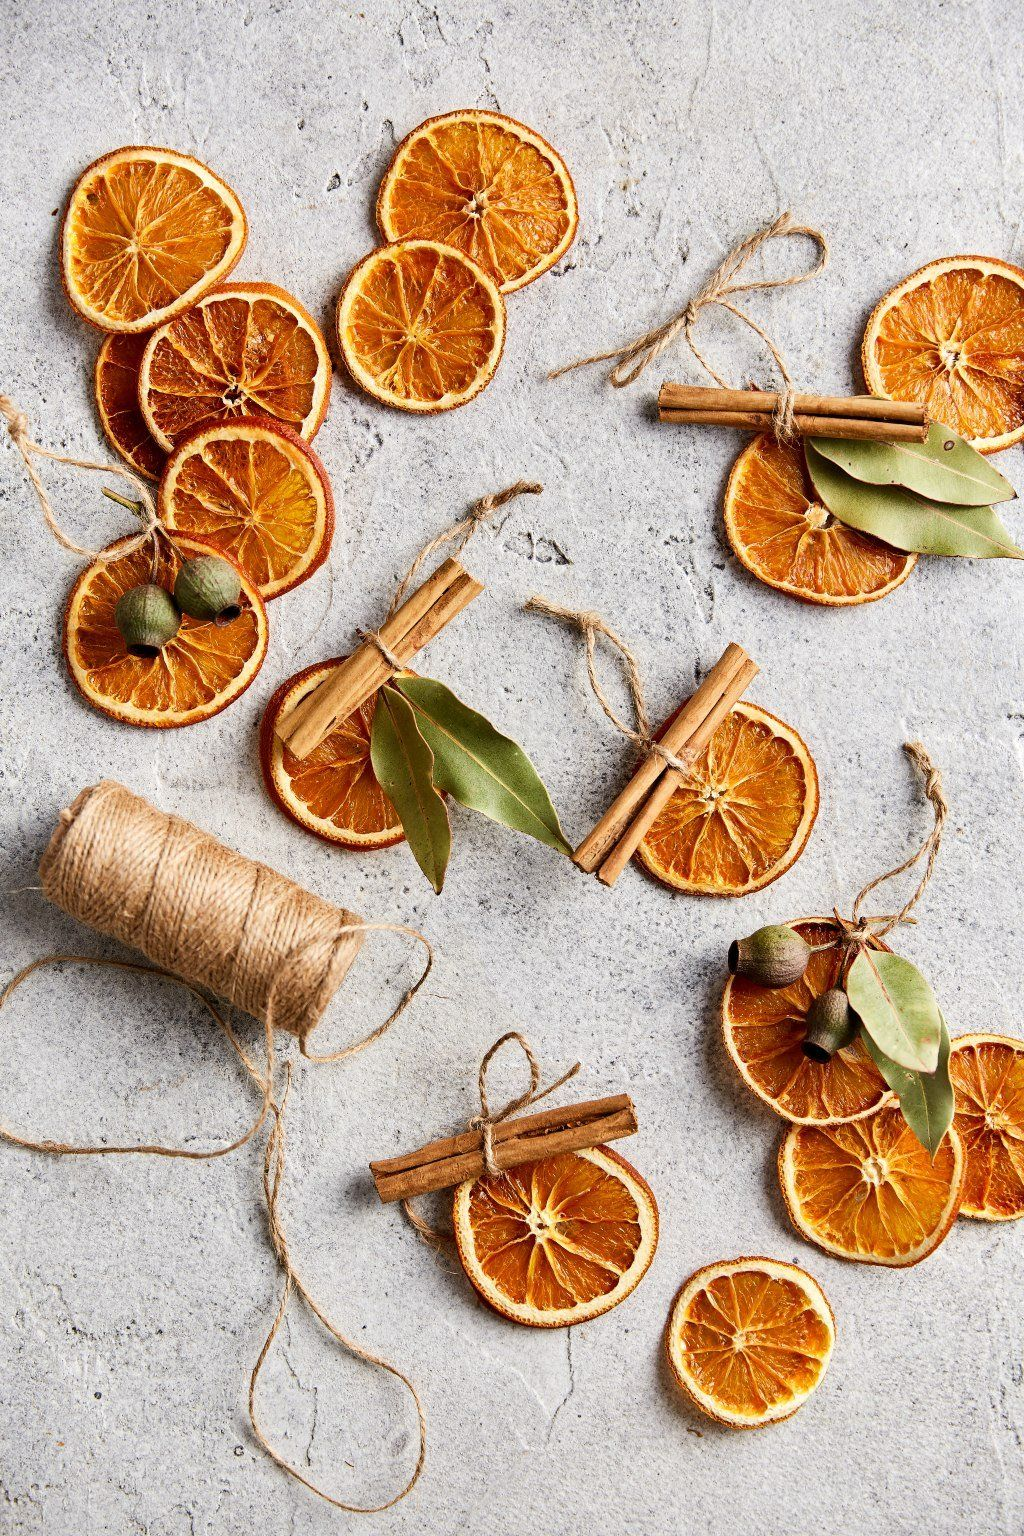 How To: Festive Citrus Decorations